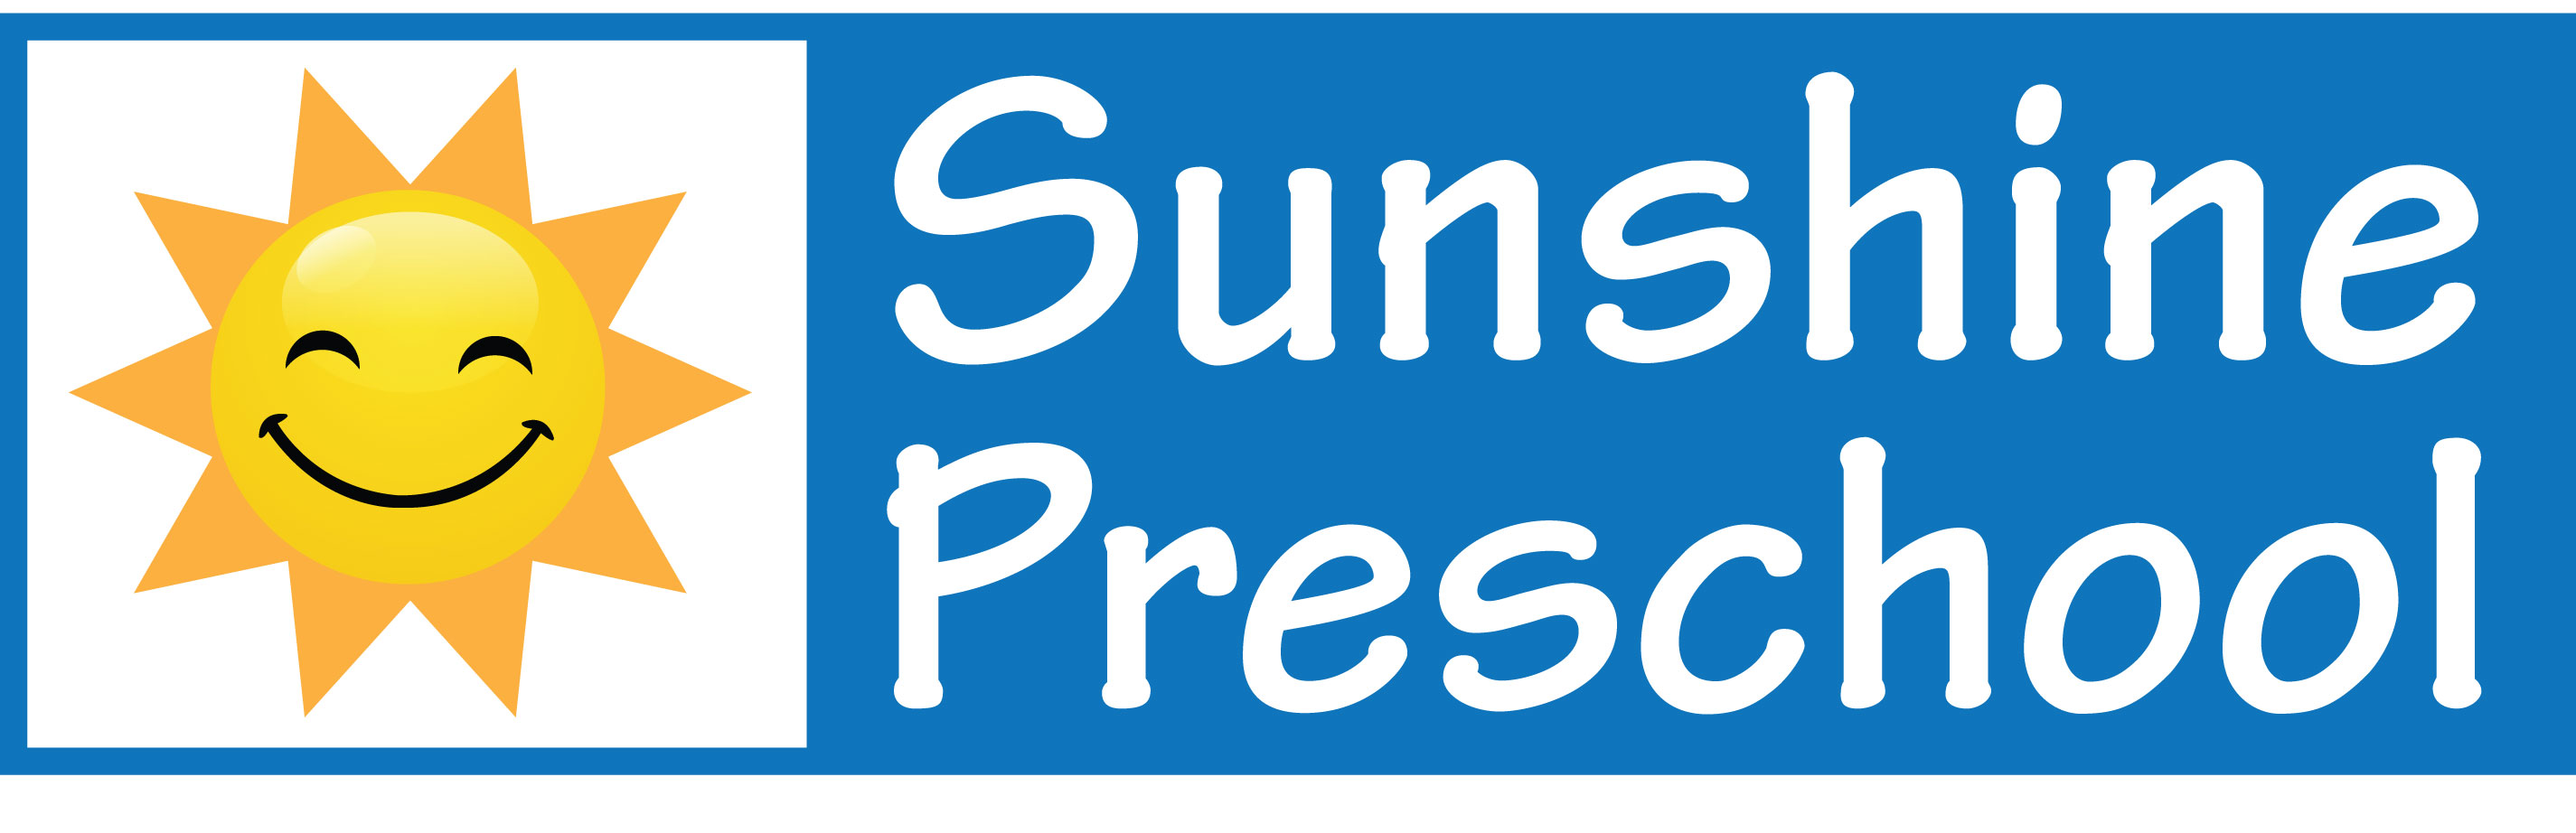 Sunshine Preschool